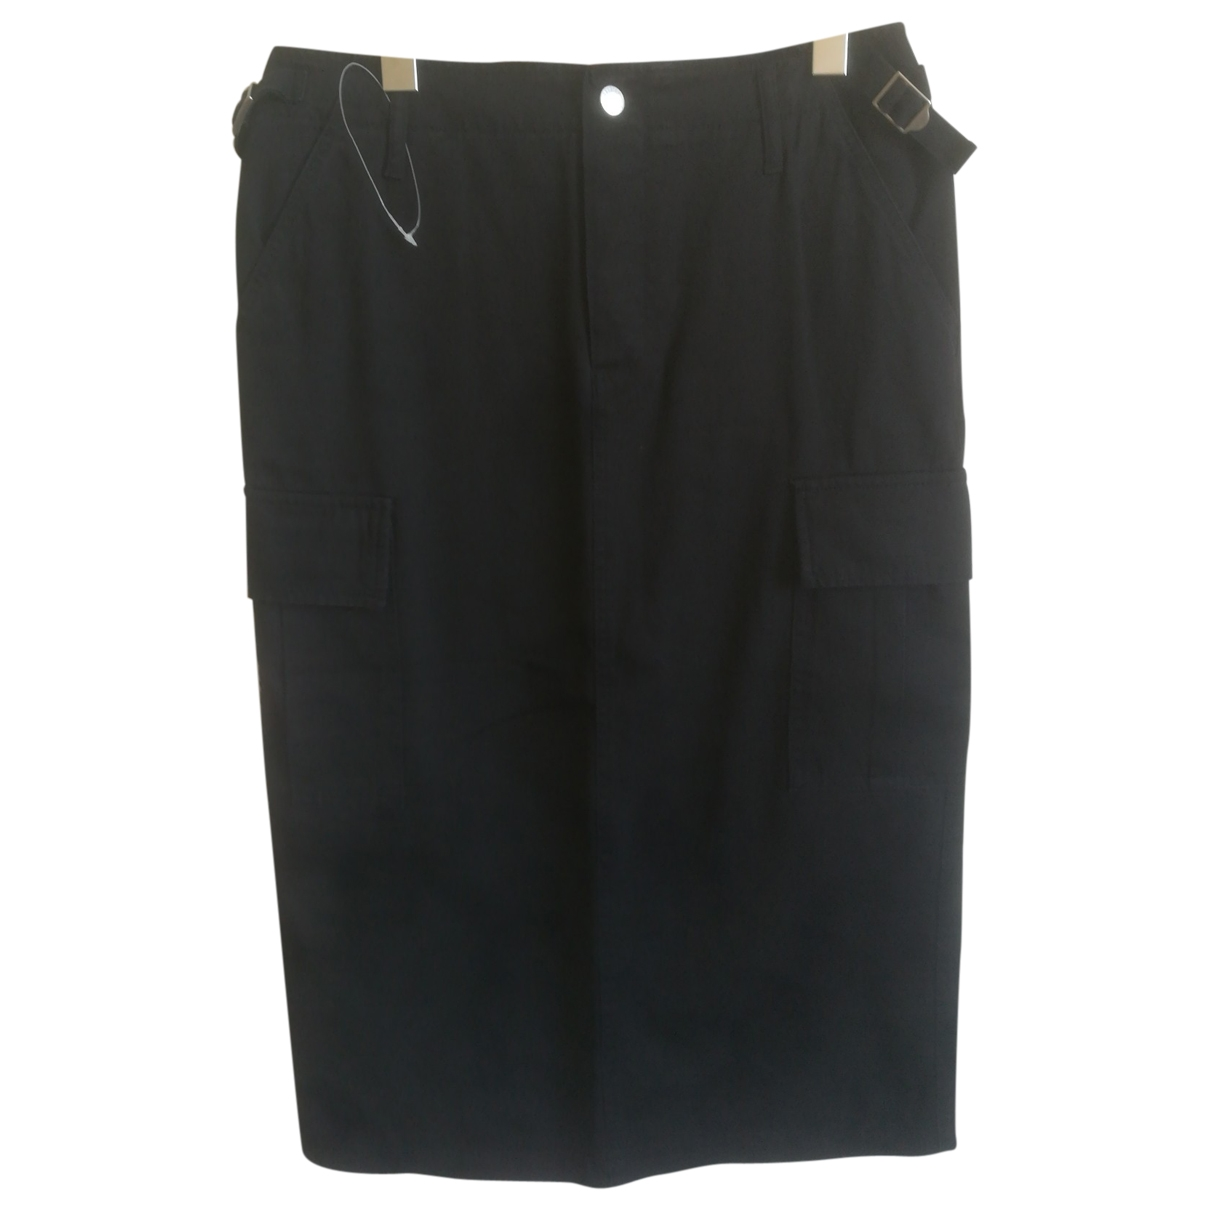 Moschino \N Black Cotton skirt for Women 44 IT